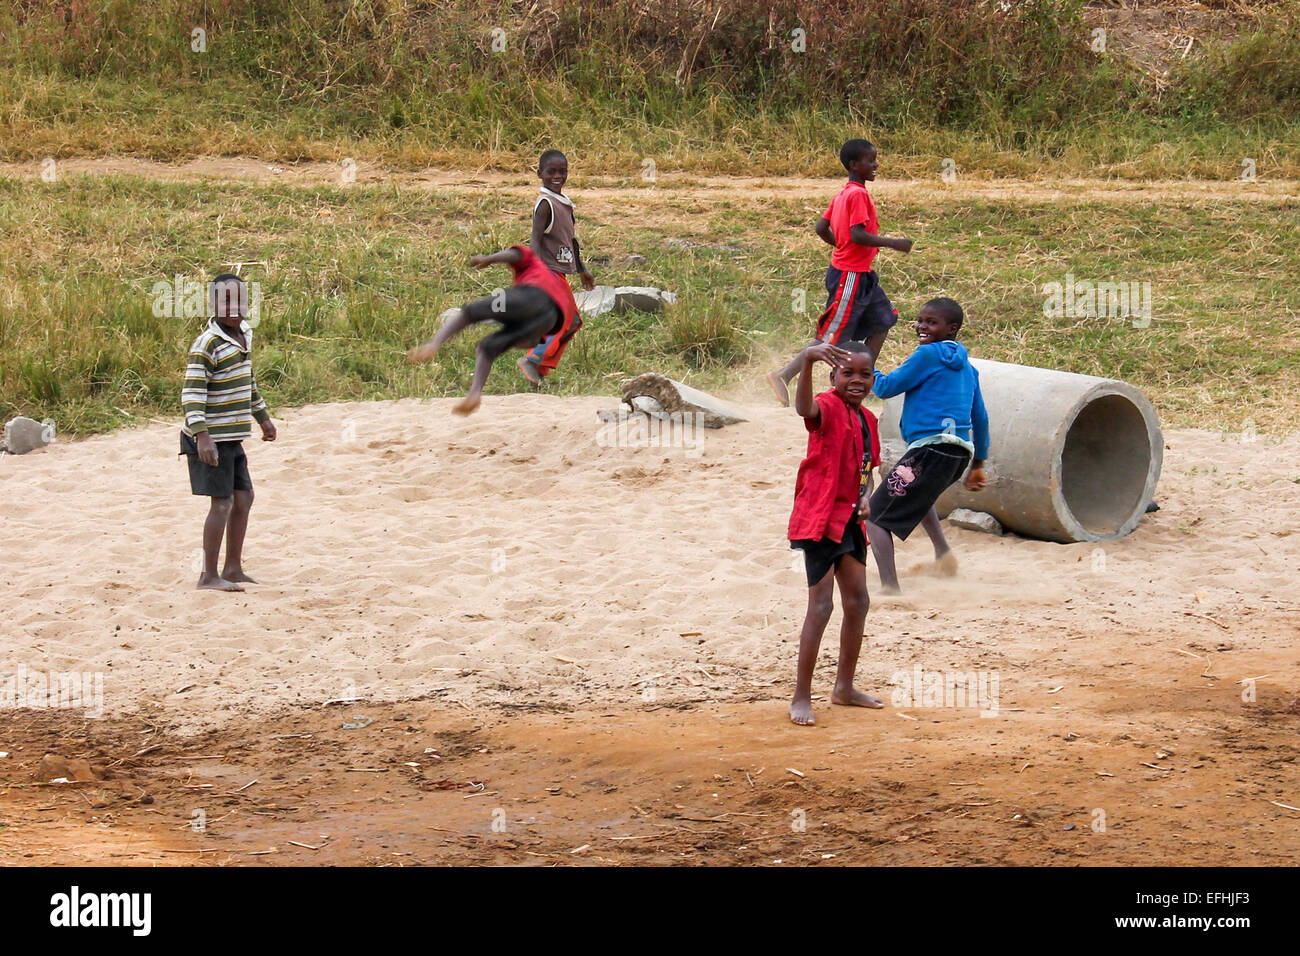 Young children entertain themselves for the day. - Stock Image